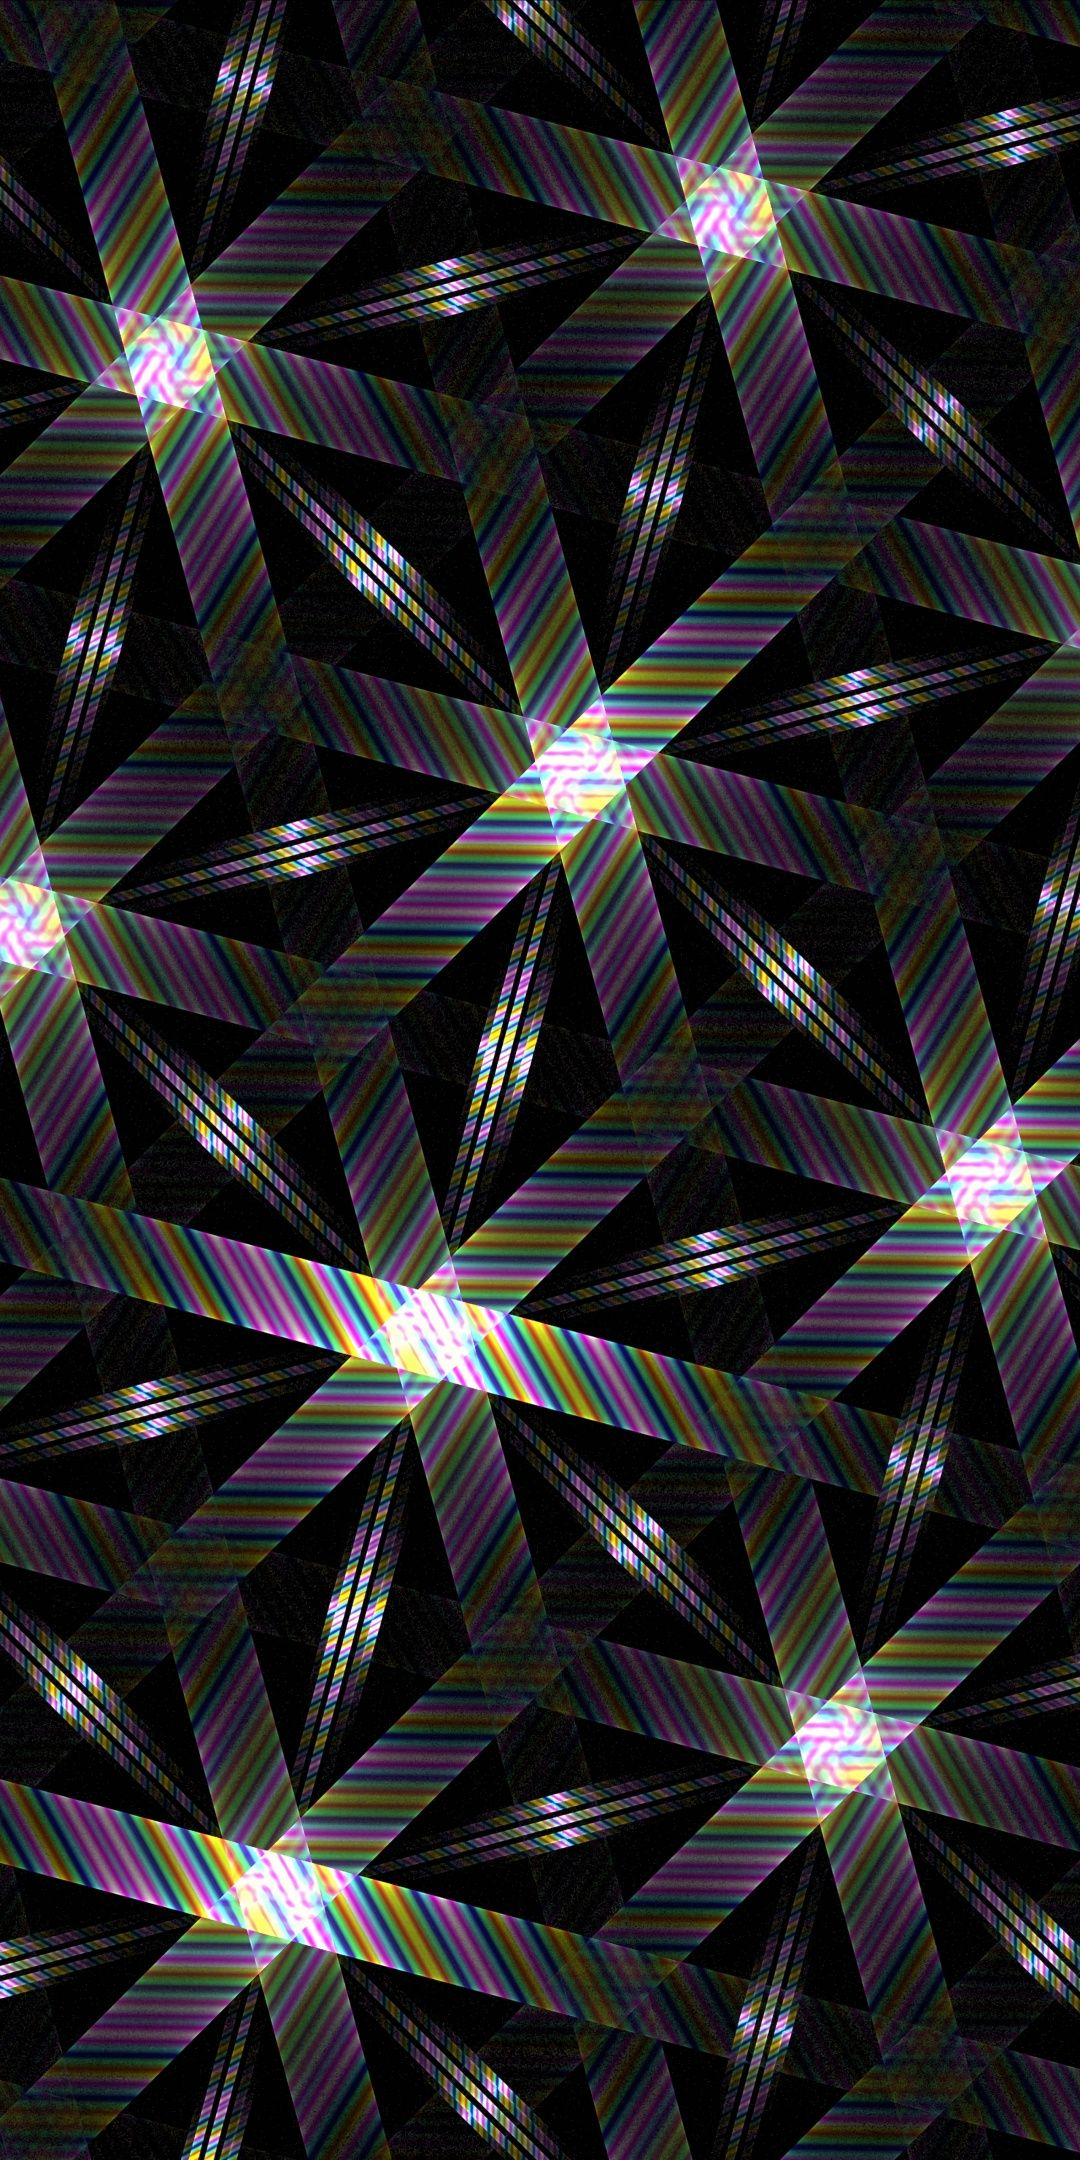 Hexagons Texture Black Colorful Stripes 1080x2160 Wallpaper In